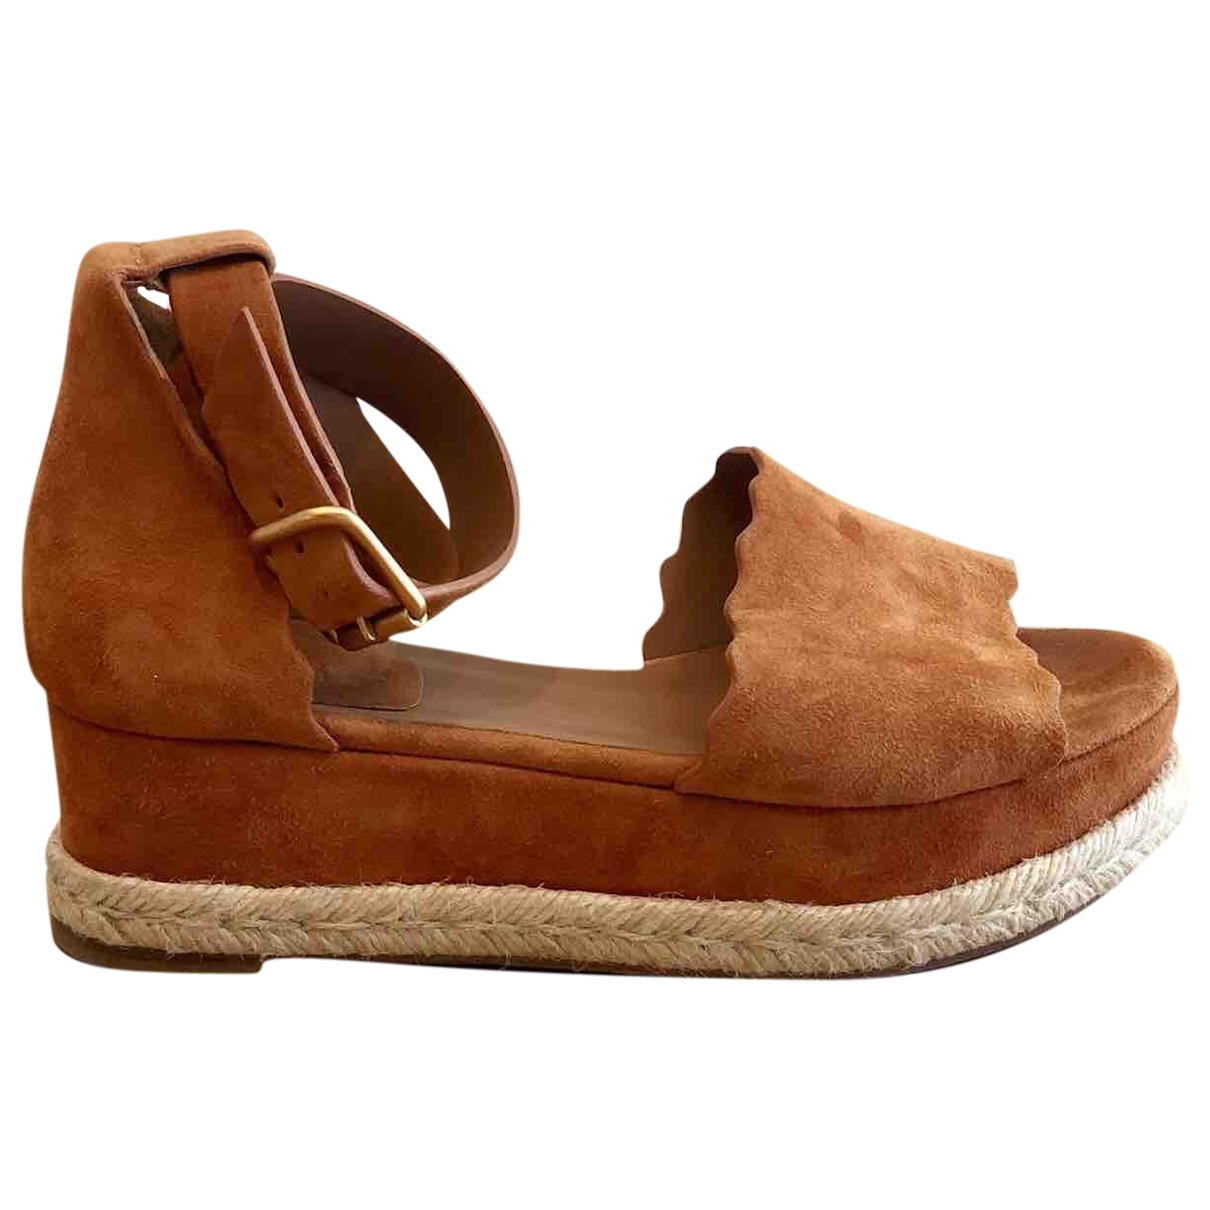 Chloé \N Brown Suede Sandals for Women 37 EU